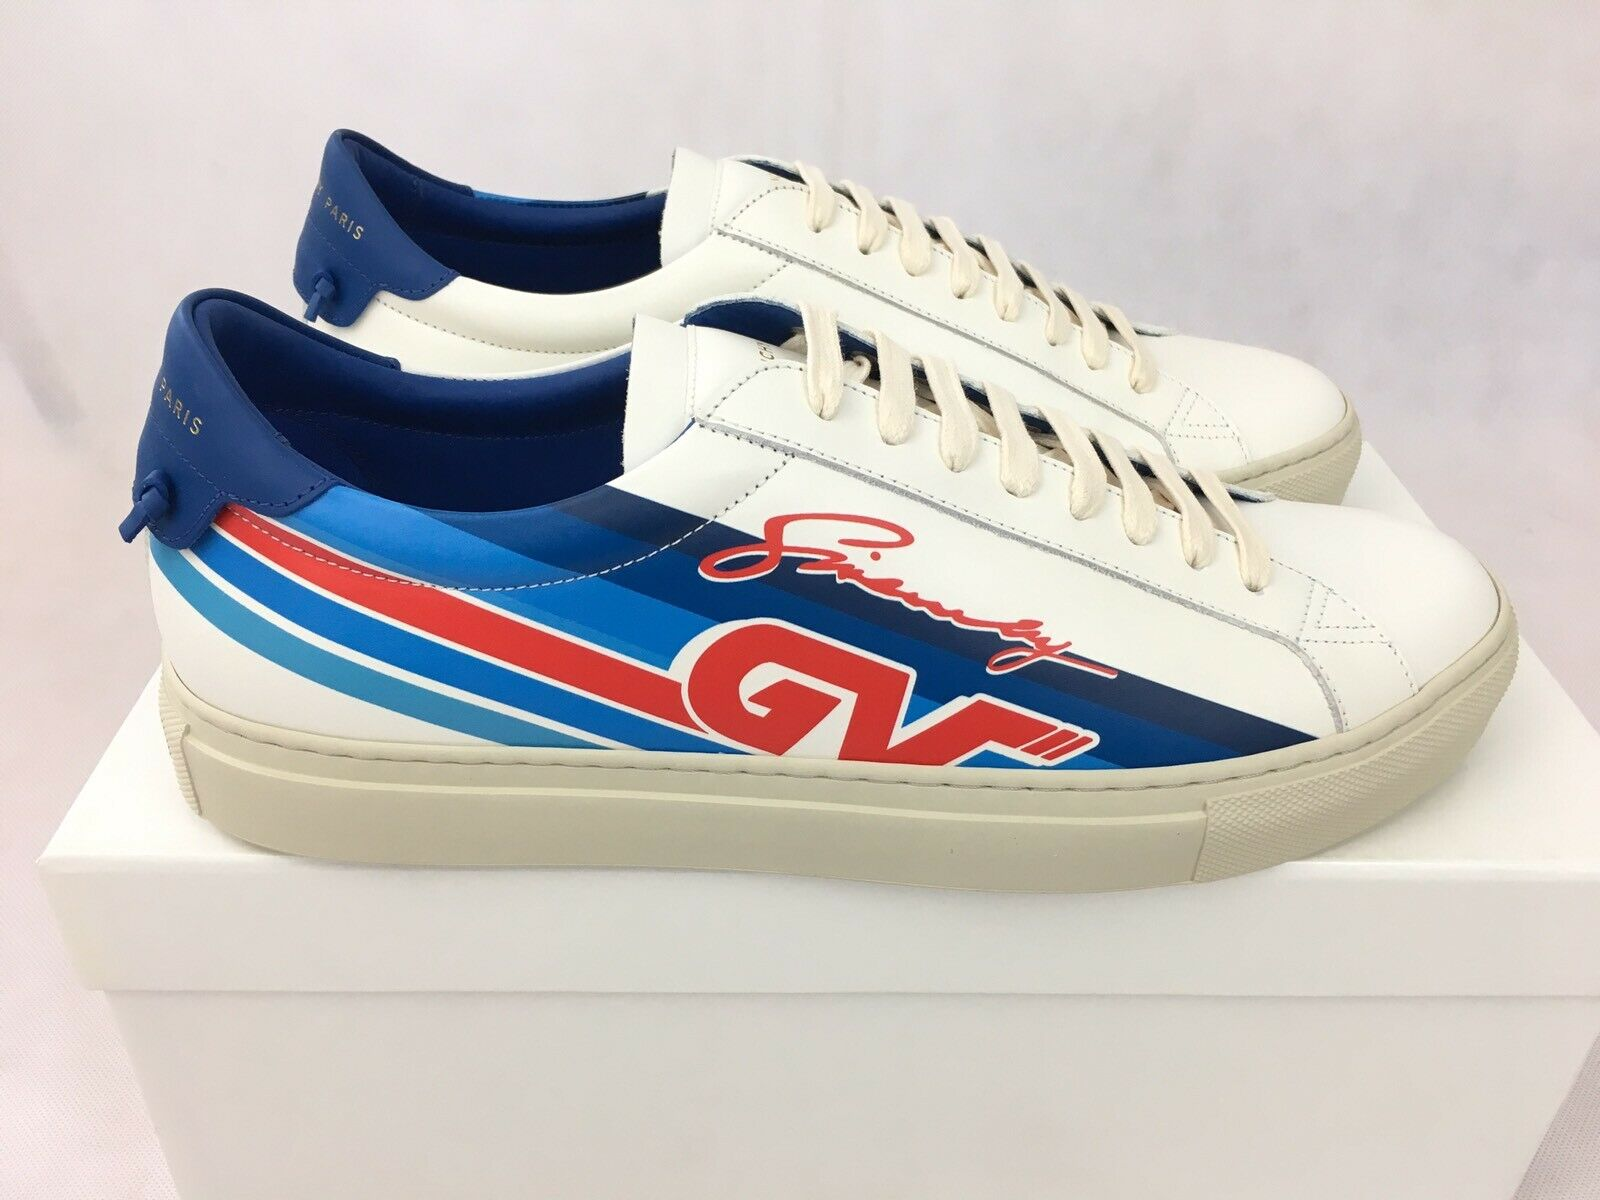 Givenchy Sneaker Trainers Paris Urban